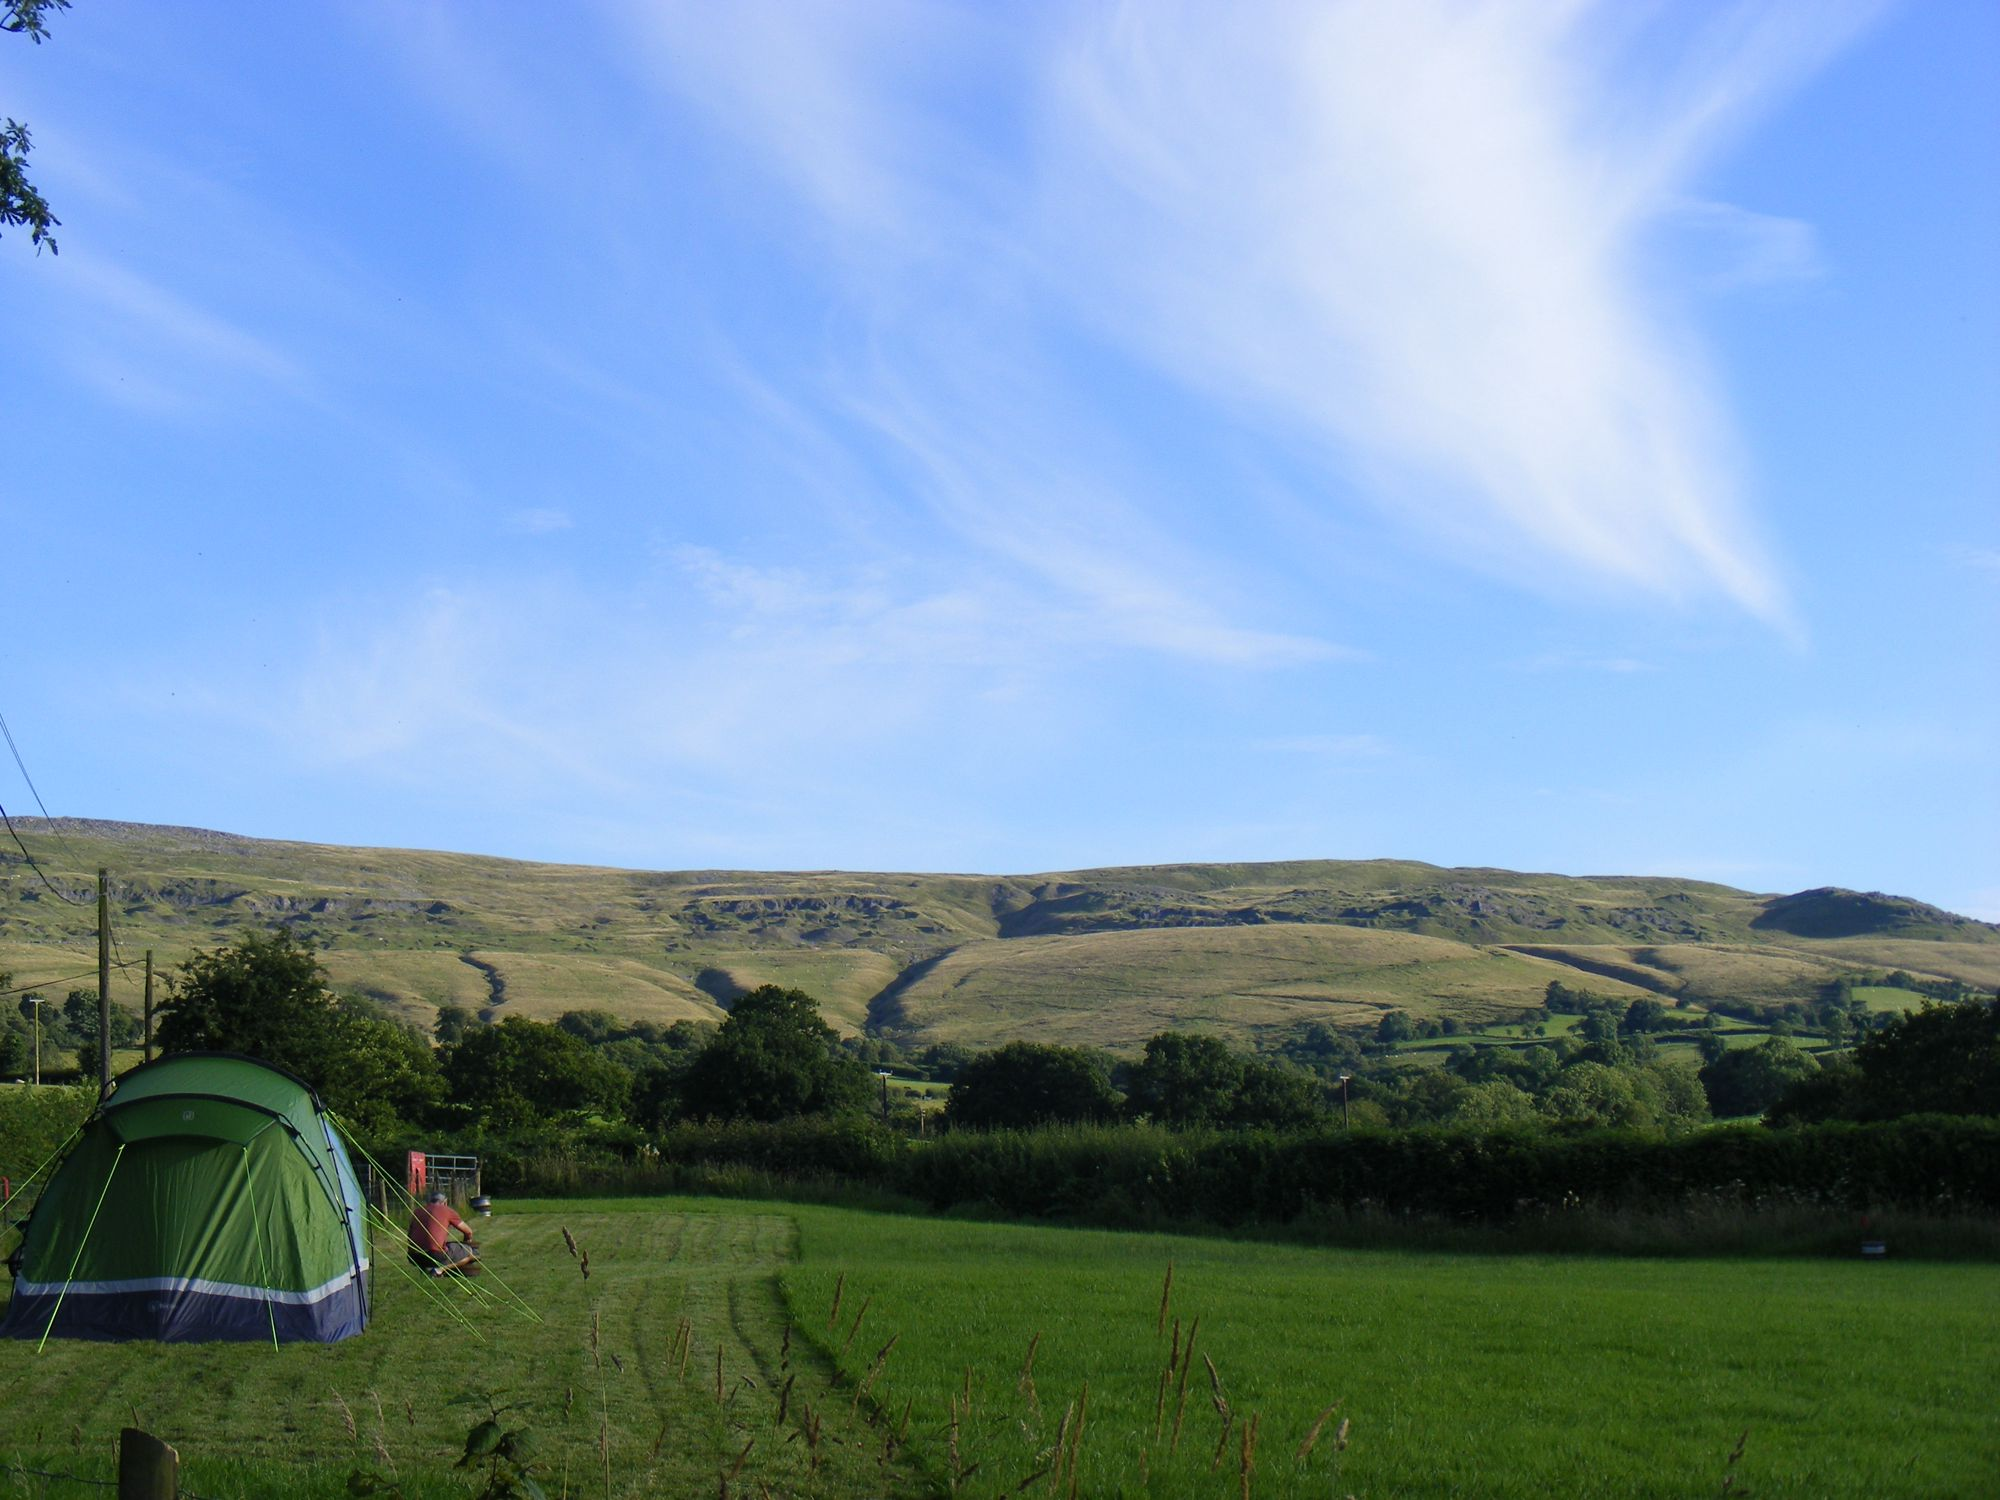 Adults-only, tent-only camping in the Brecon Beacons with space for just 15 grassy pitches.